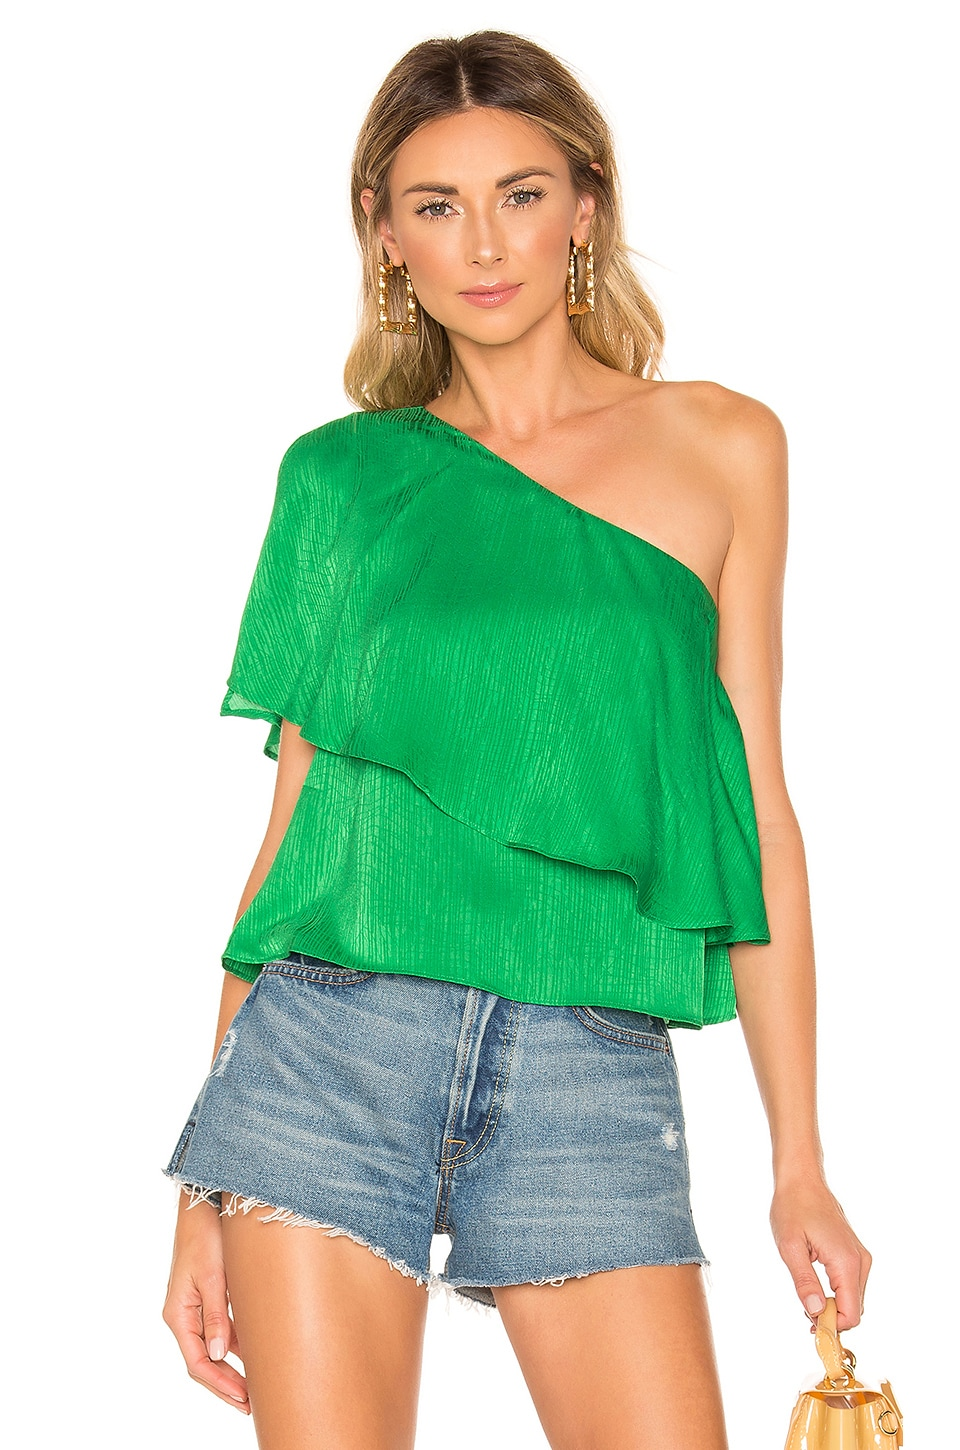 House of Harlow 1960 x REVOLVE Leya Top in Kelly Green